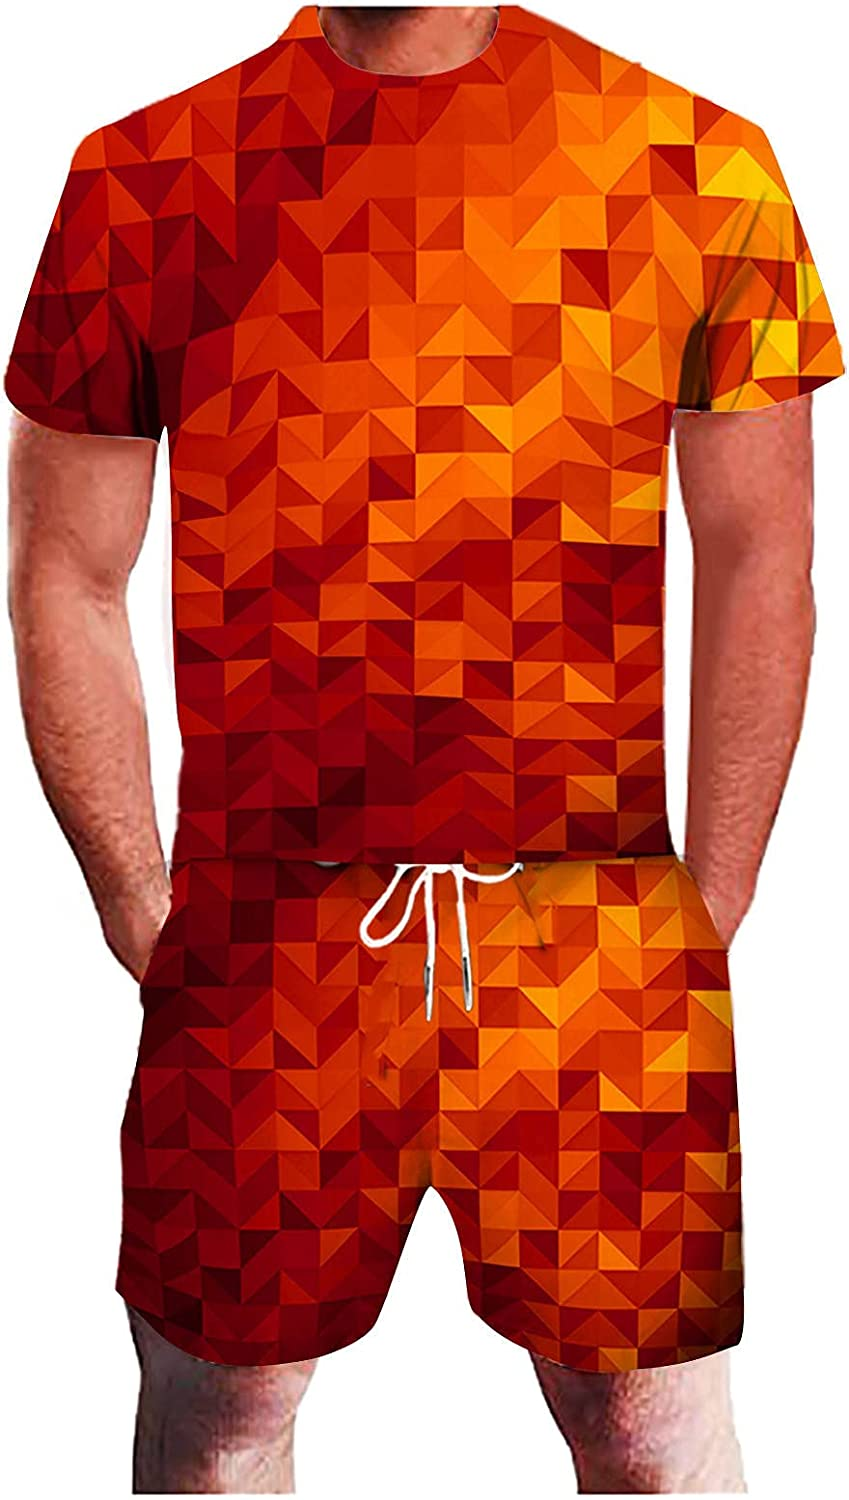 Beshion Two-Piece Suit Athletic Quick Dry Shorts and Short Sleeve 3D Geometric Abstract Fitness Running Sweatsuit